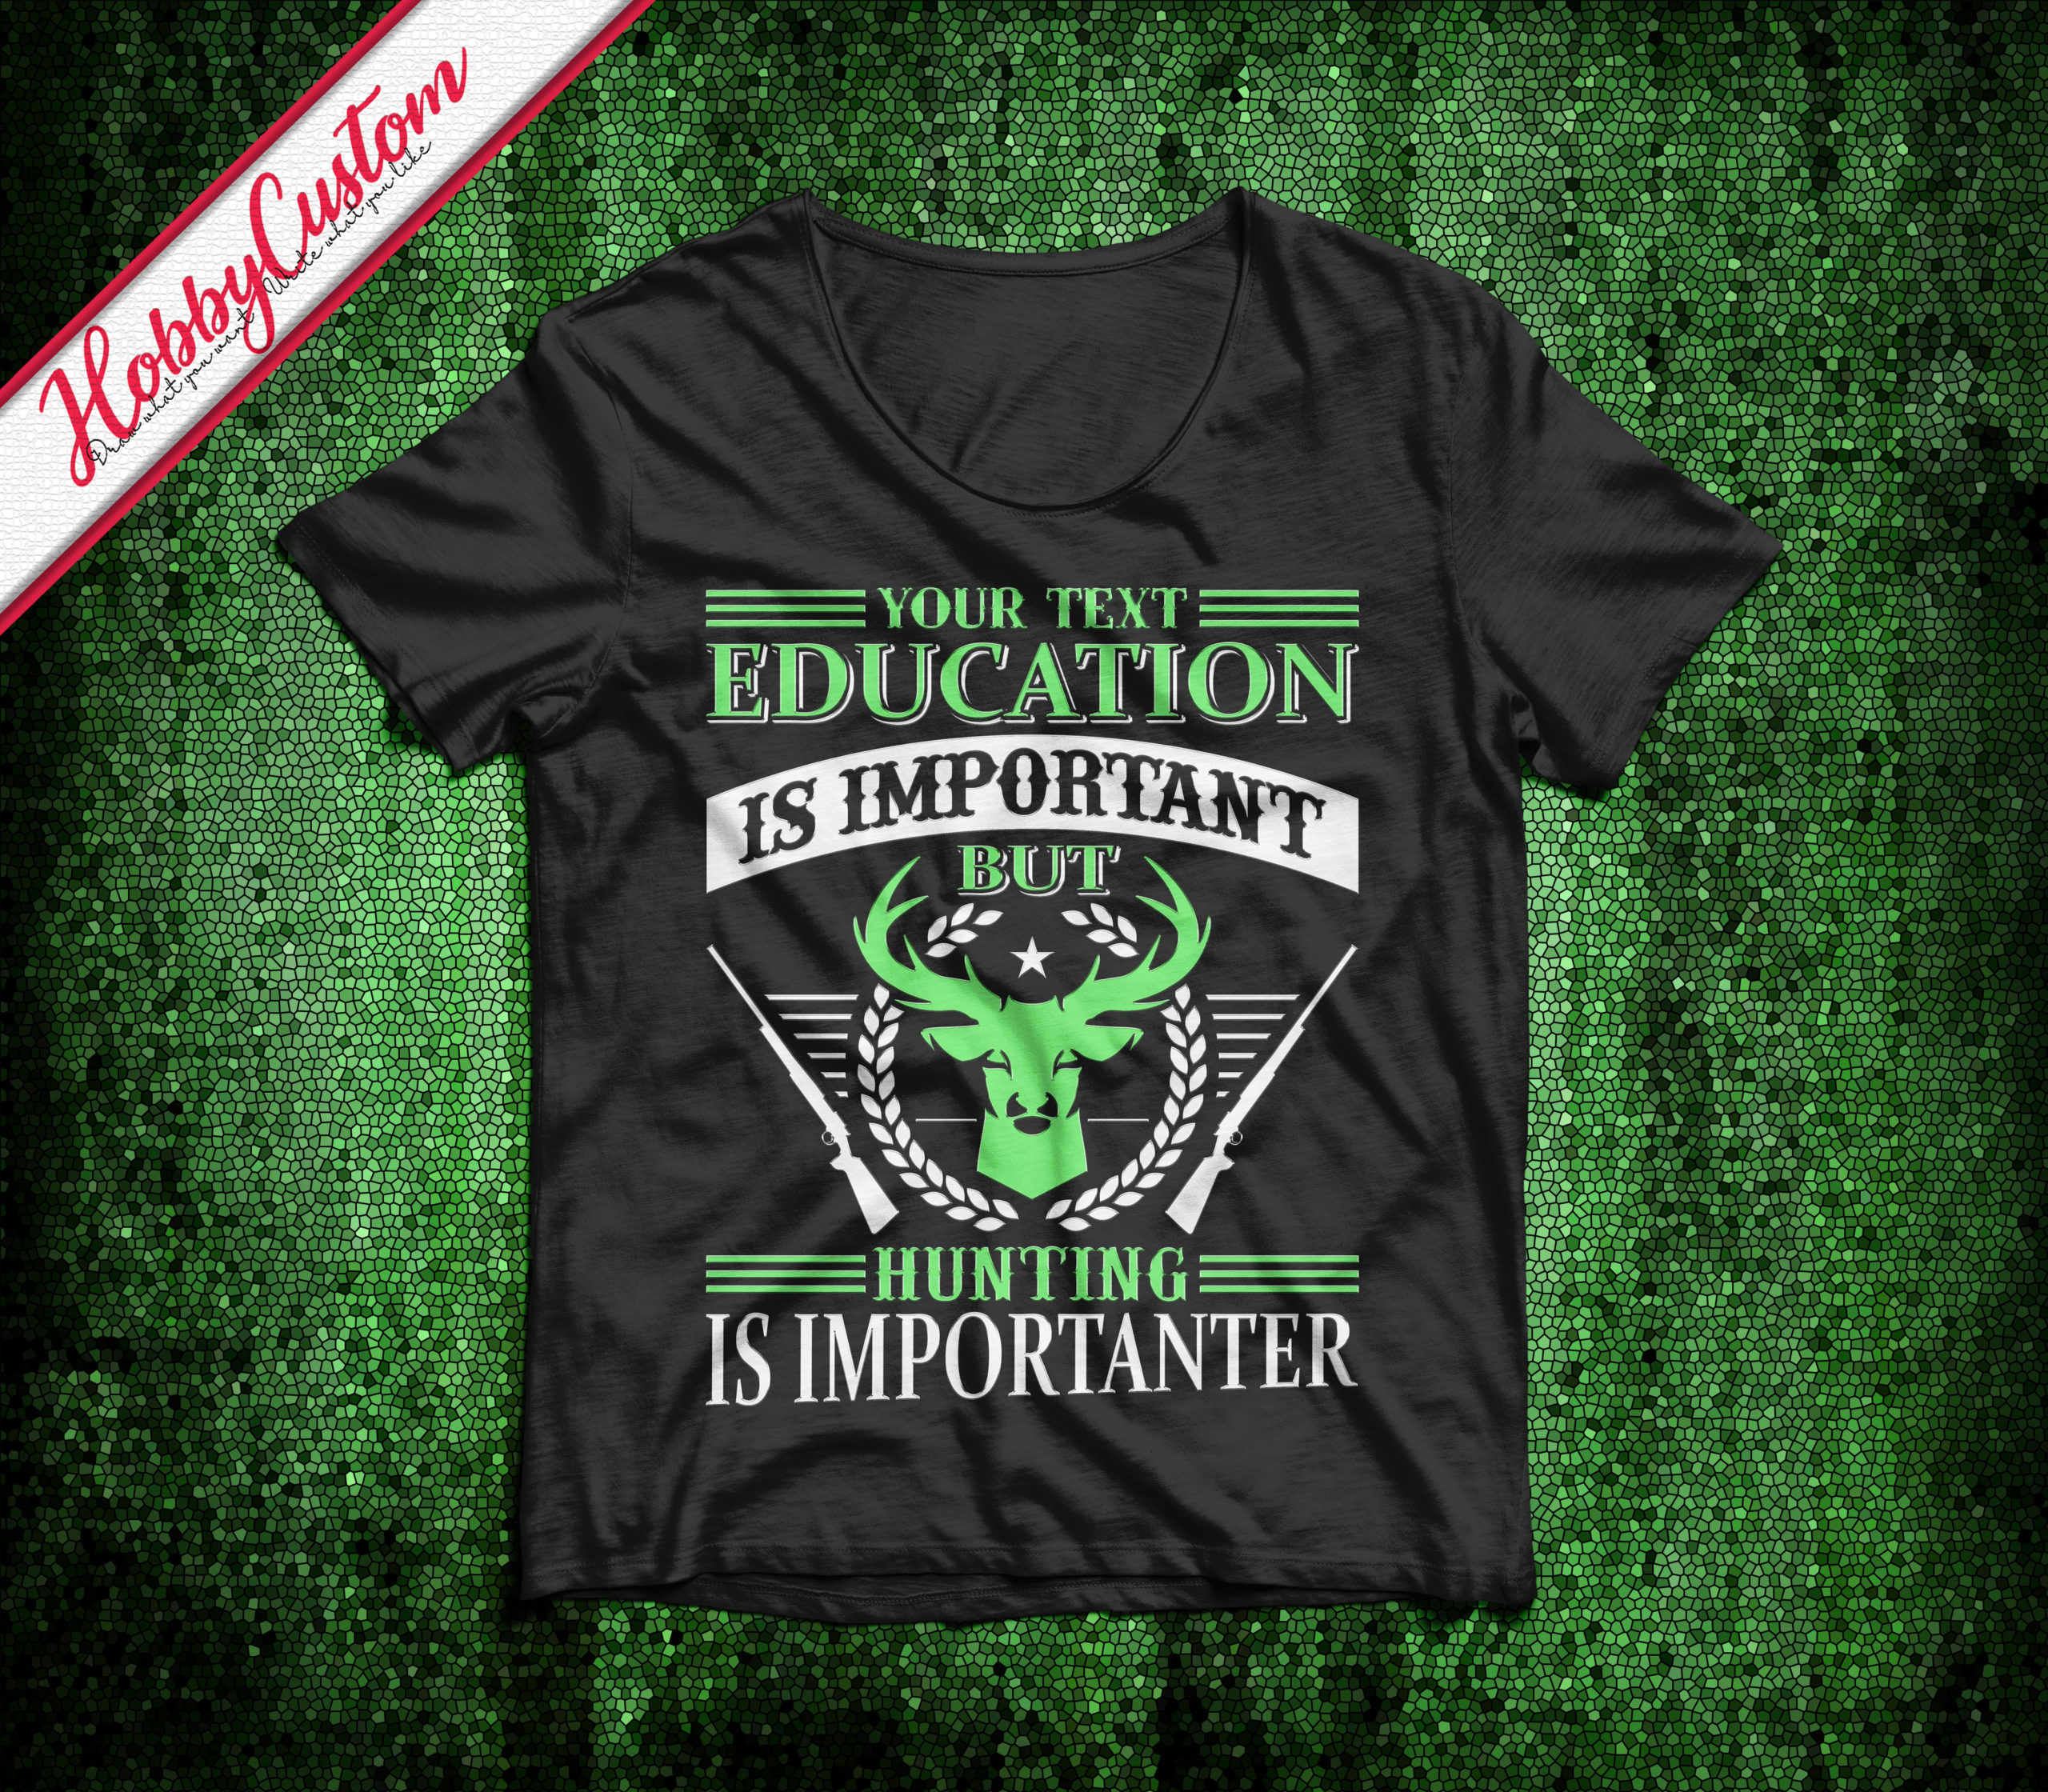 Education is important but hunting is importanter customize t-shirt